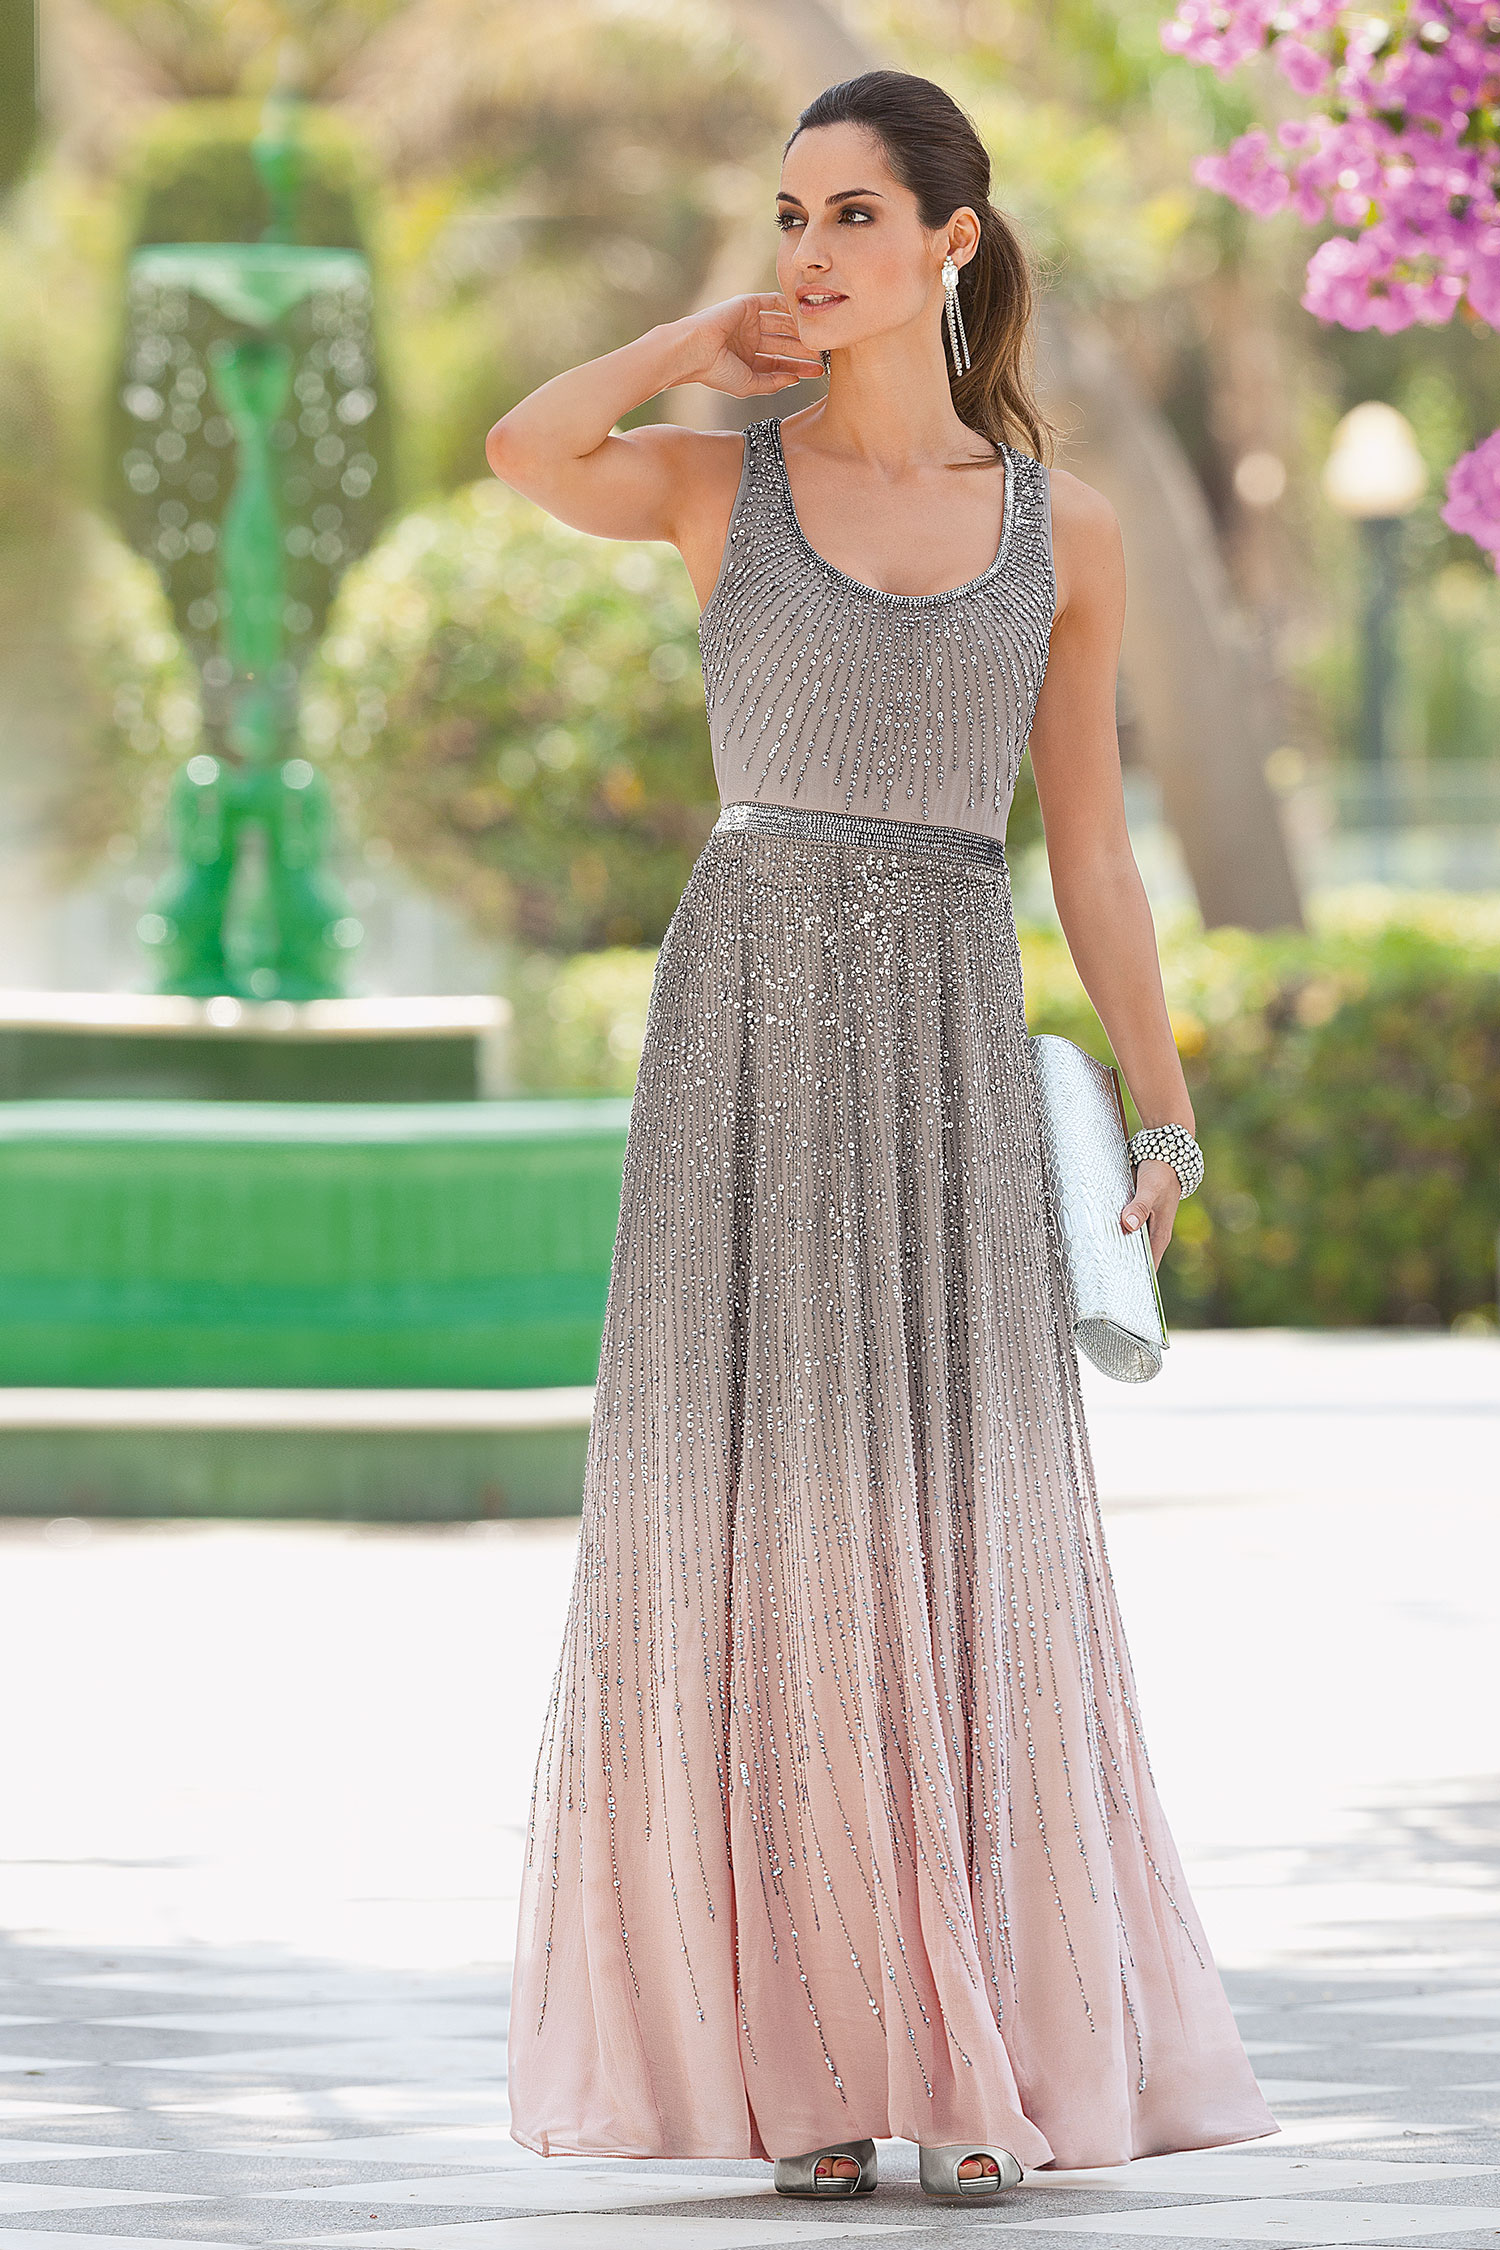 Together Sparkly Beaded Maxi Dress